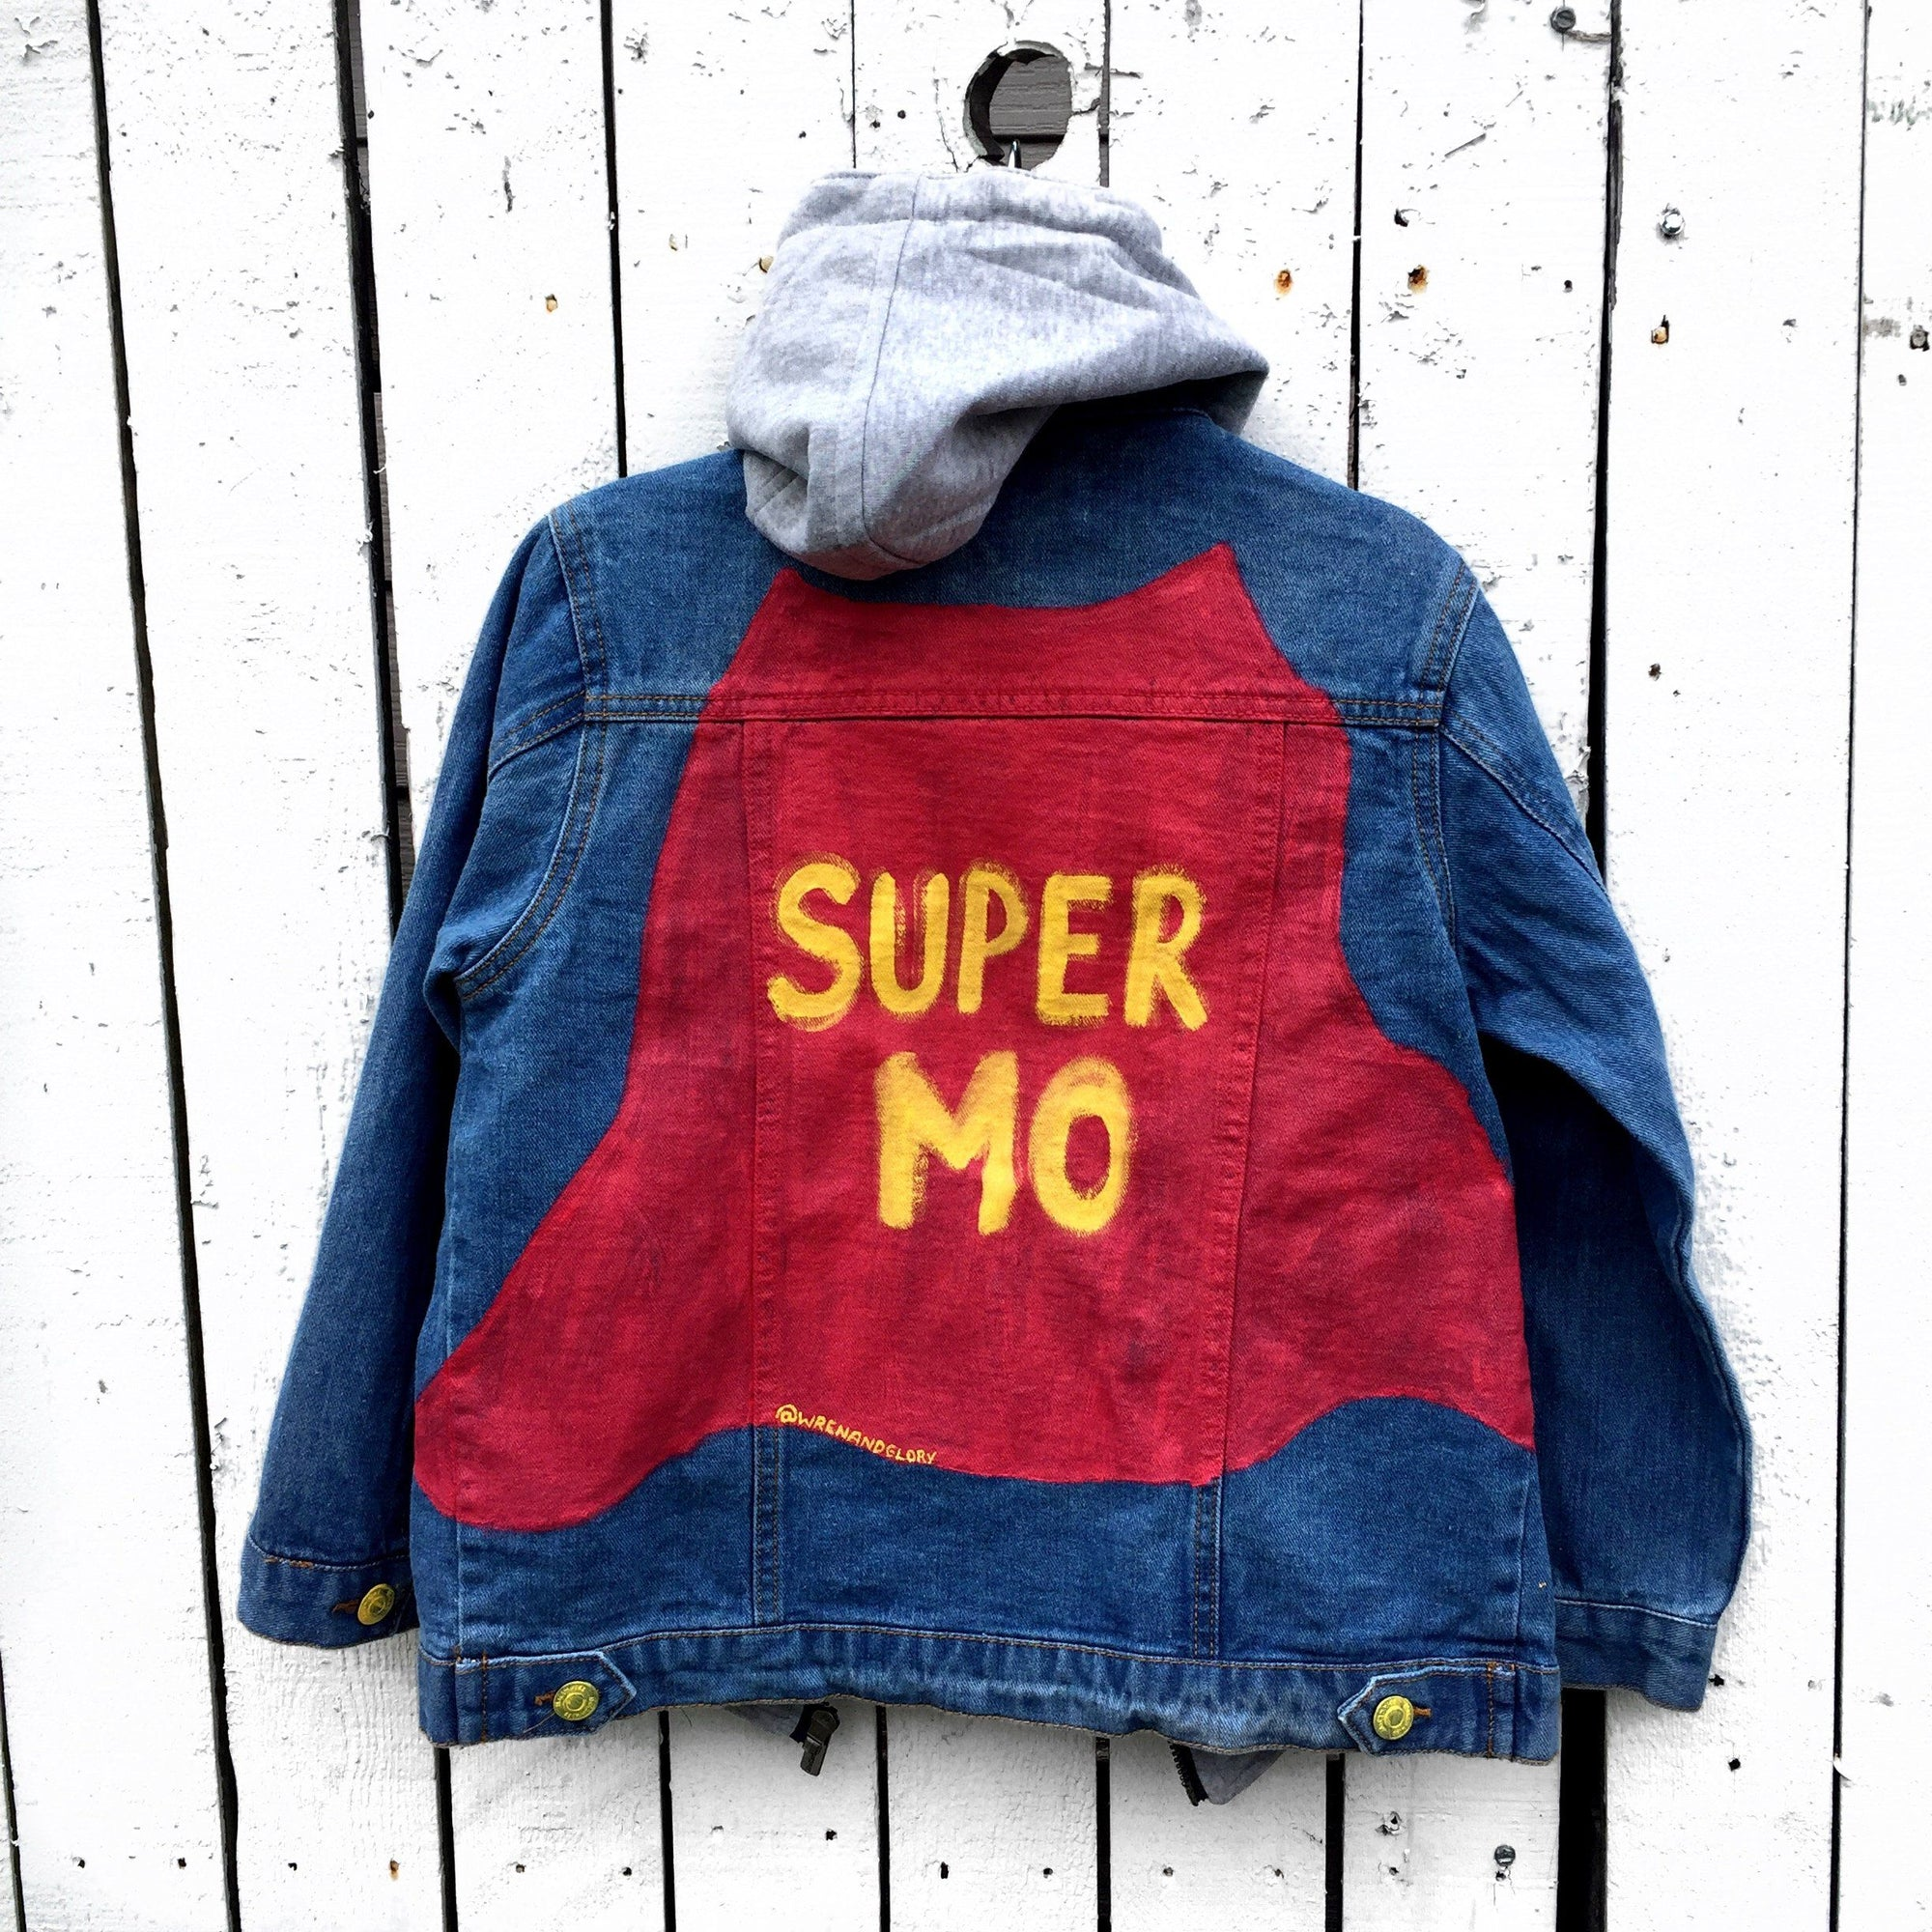 'SUPER ME' DENIM JACKET - GIRLS/BOYS